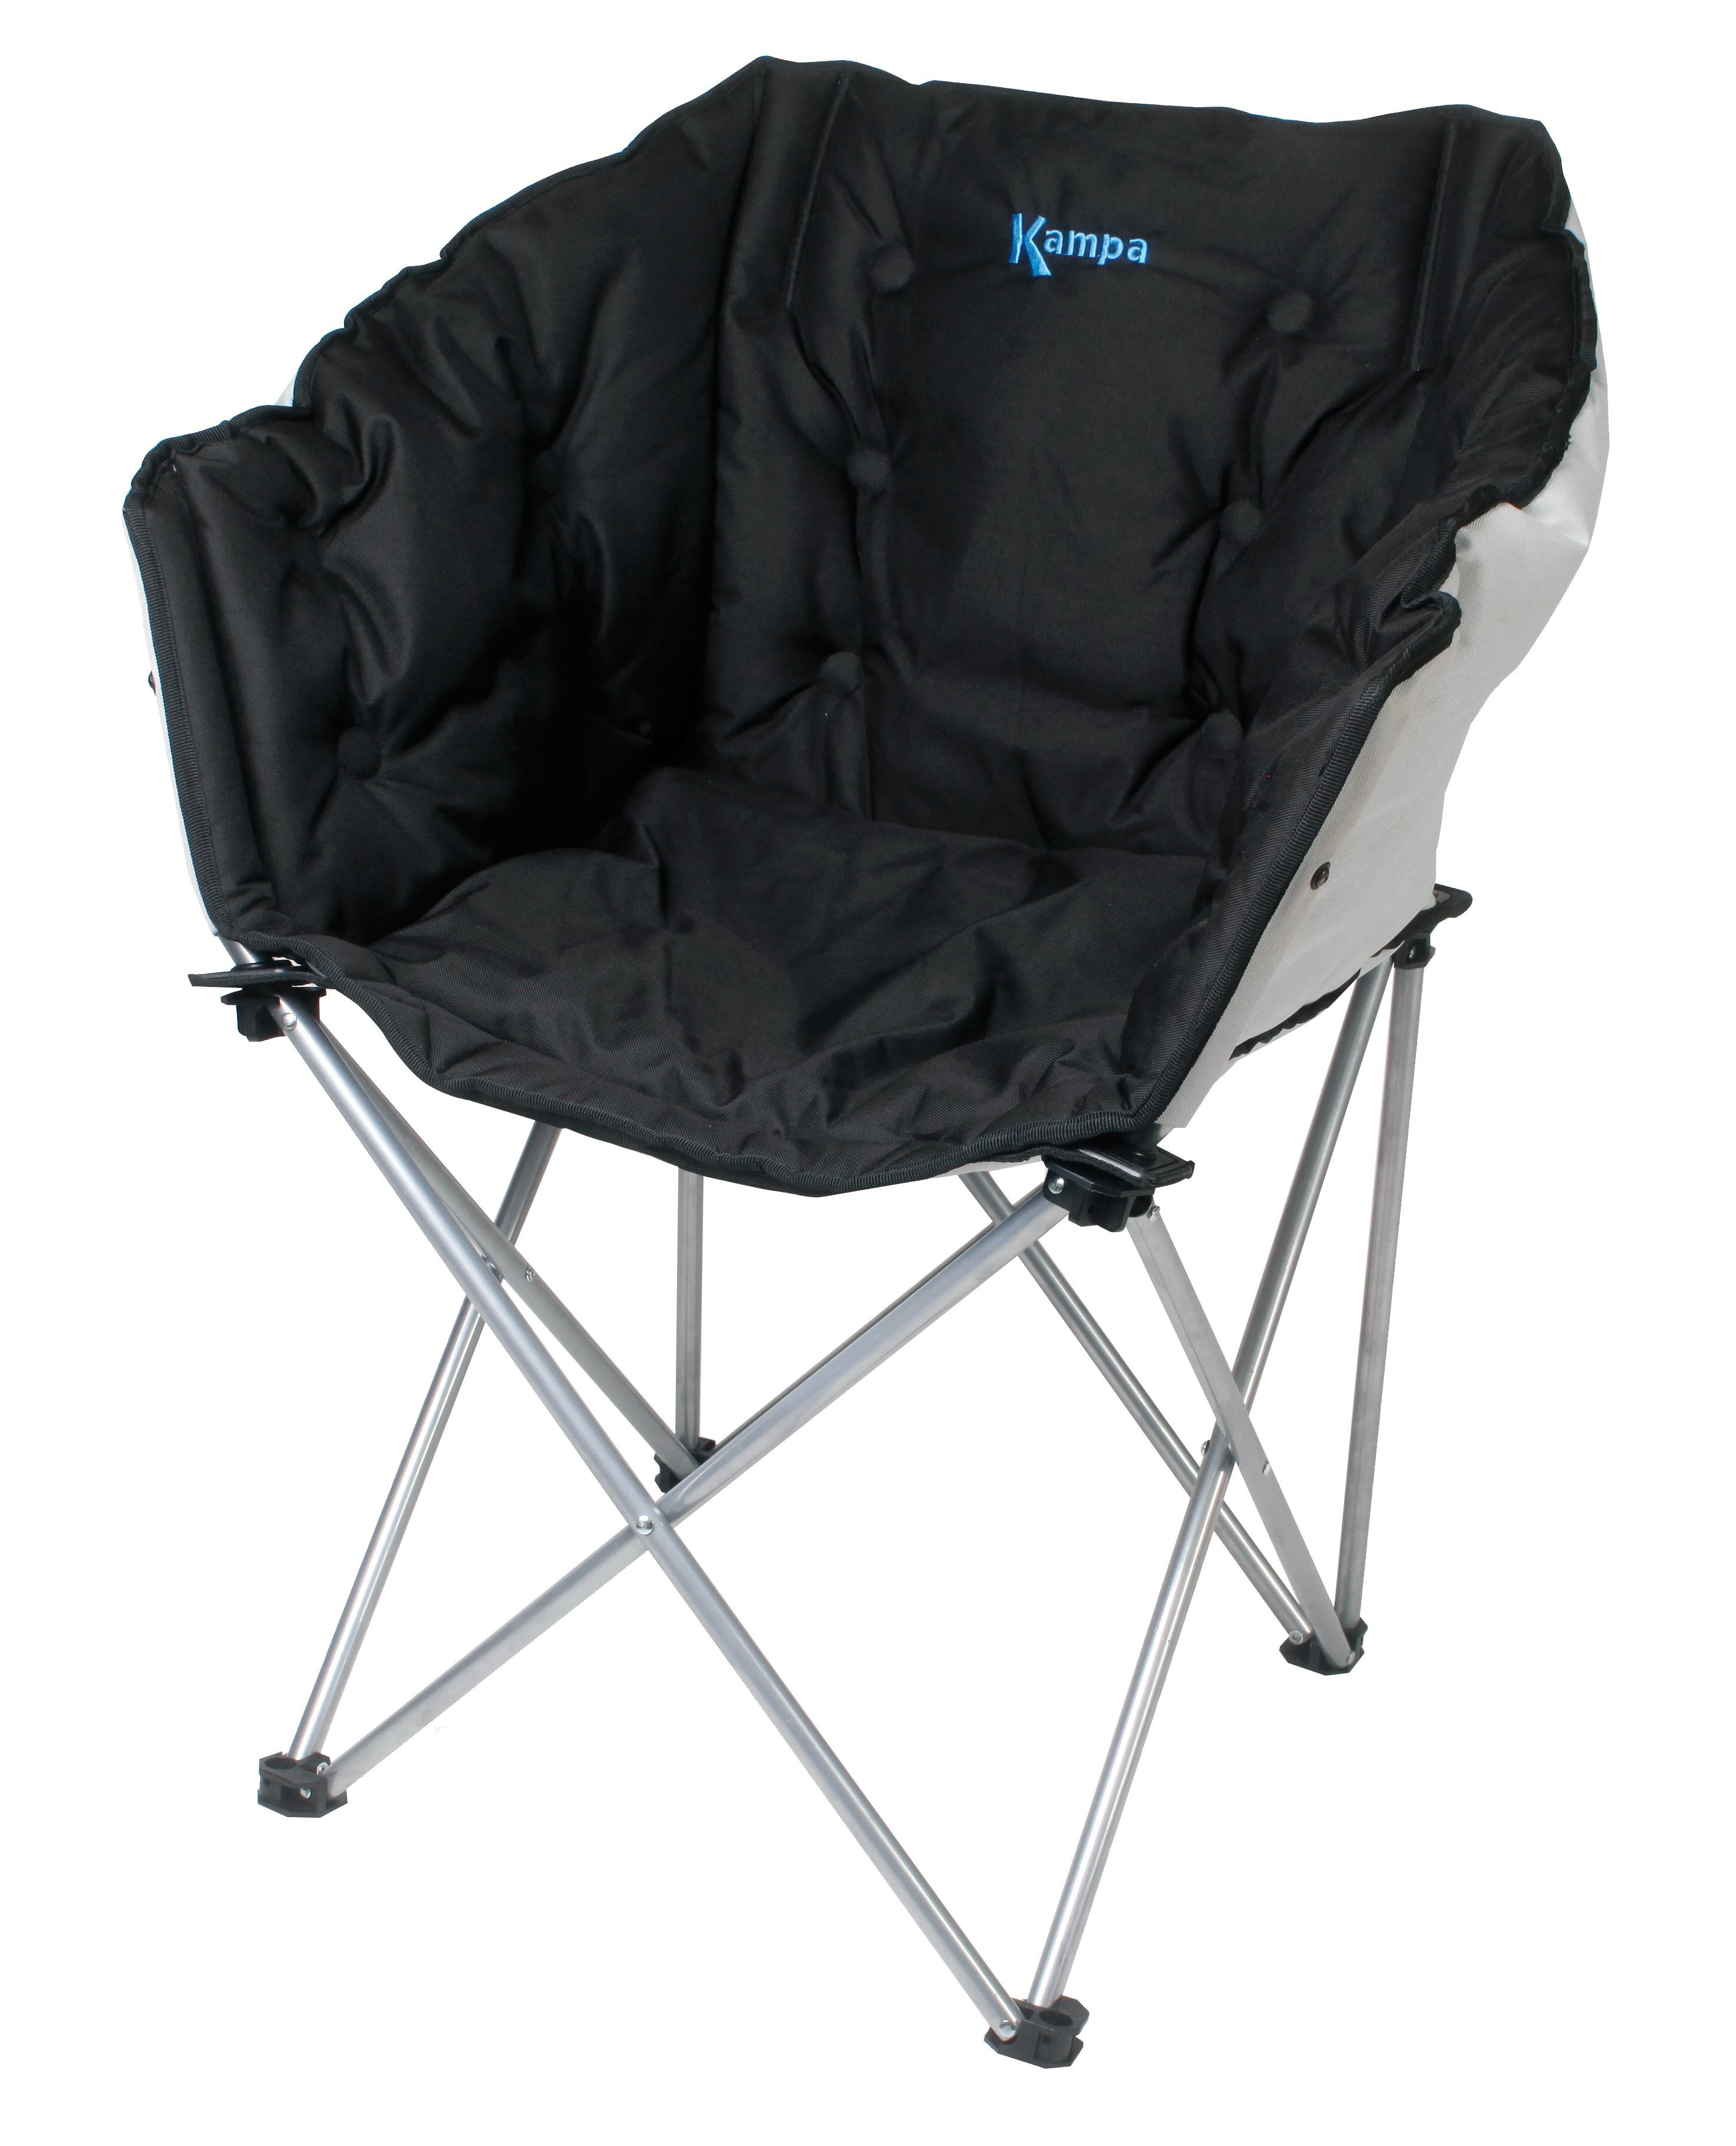 Kampa Tub Chair From Kampa For 163 25 00